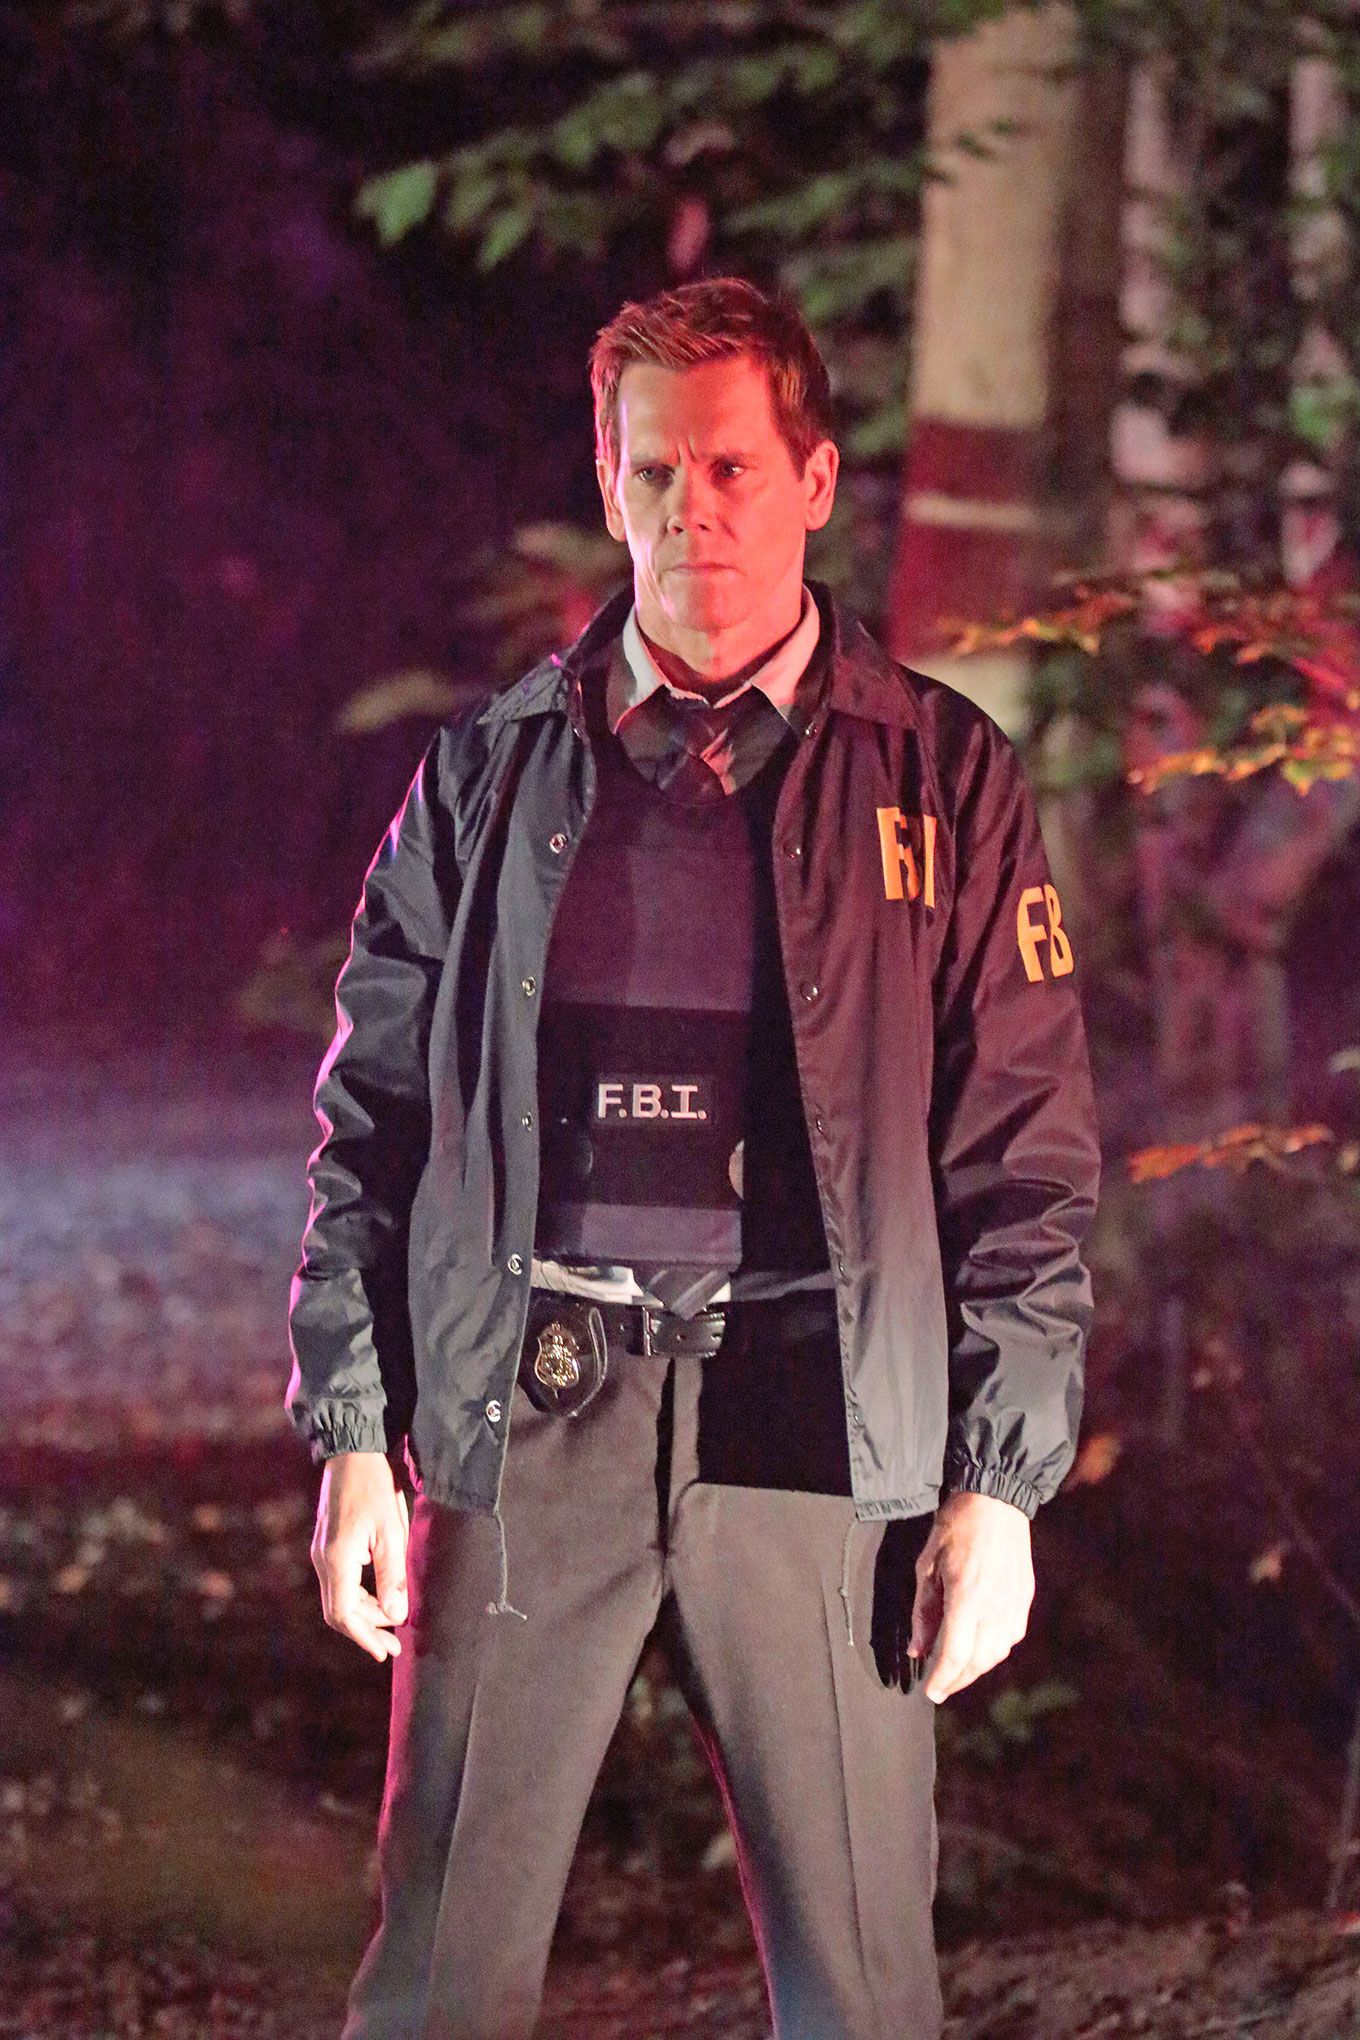 Oh no!!!!!! First Joe Carroll died and now The Following has too. Fox has canceled the Kevin Bacon-starring serial killer drama after three seasons. The drama, which made a splash when it debuted in Jan. 2013, told the story of dogged FBI agent Ryan Hardy (Kevin Bacon), who spent years tracking down Poe-obsessed Joe Carroll (James Purefoy). But the series has struggled in the ratings this season, Joe's execution be damned. A recent outing drew 3.22 million viewers and a 1.1 in the demo.